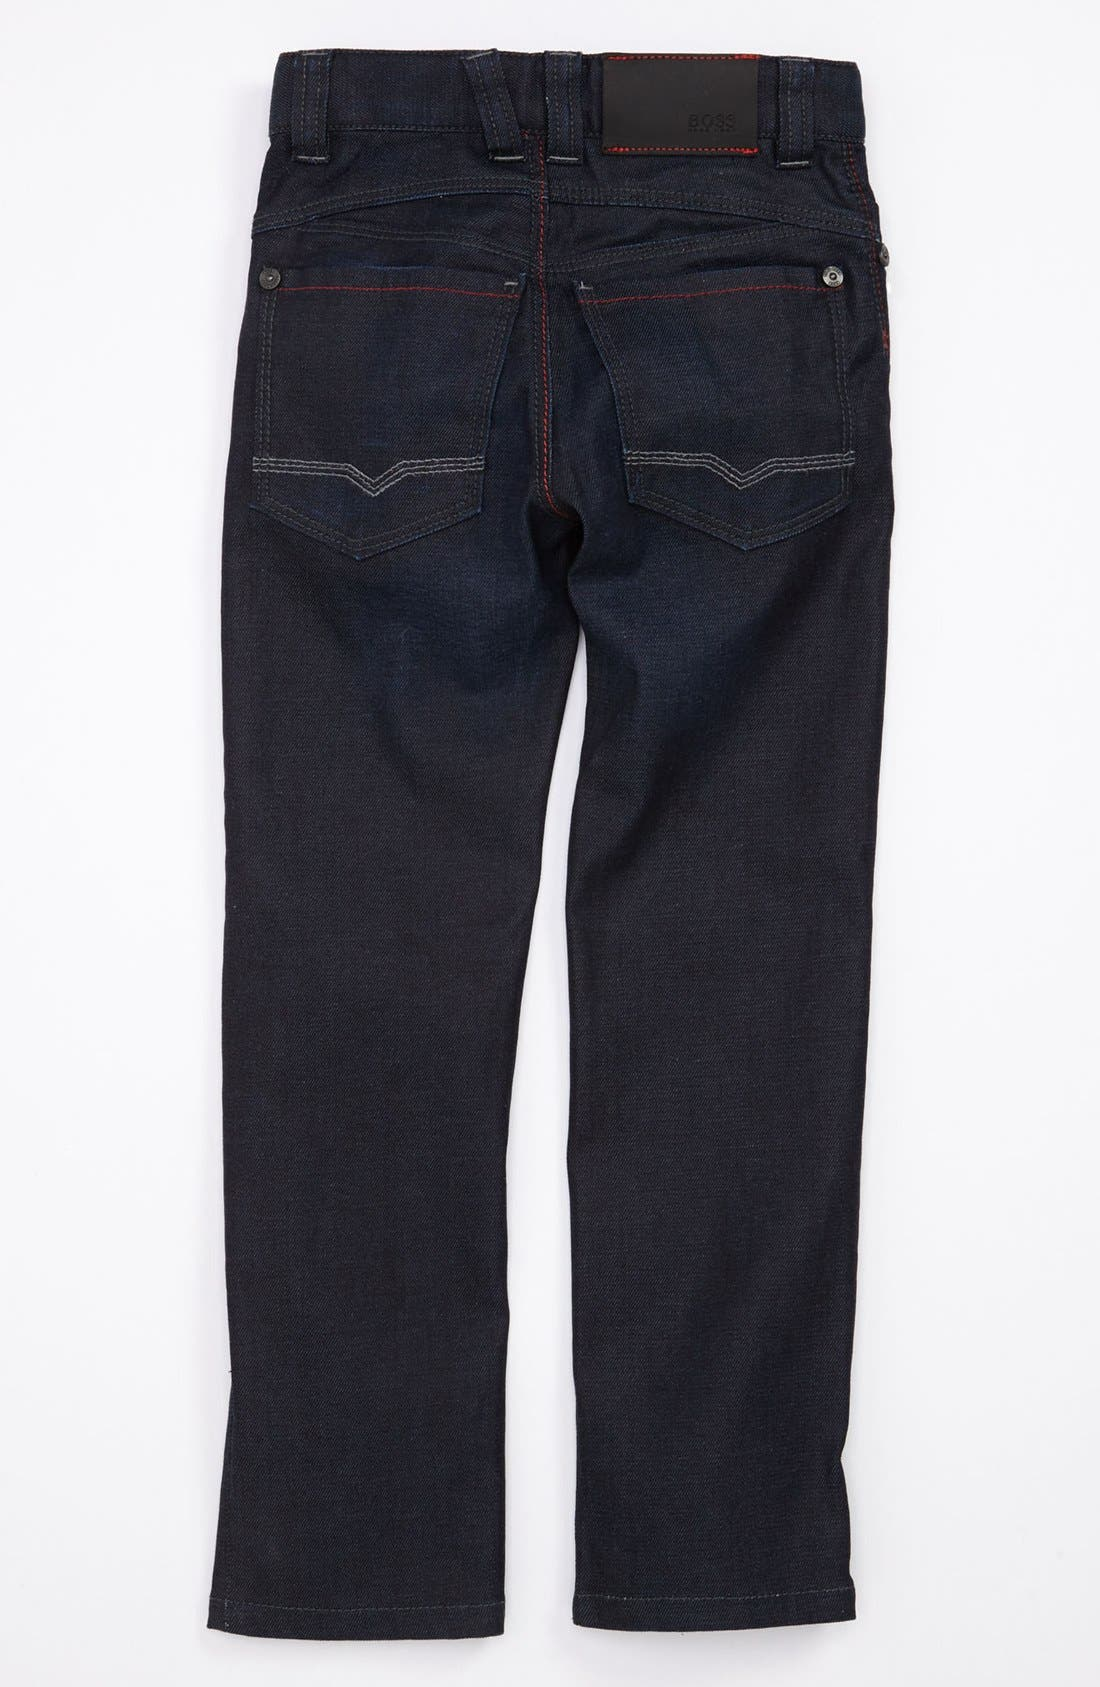 Alternate Image 1 Selected - BOSS Kidswear 'Montana' Slim Straight Jeans (Little Boys & Big Boys)